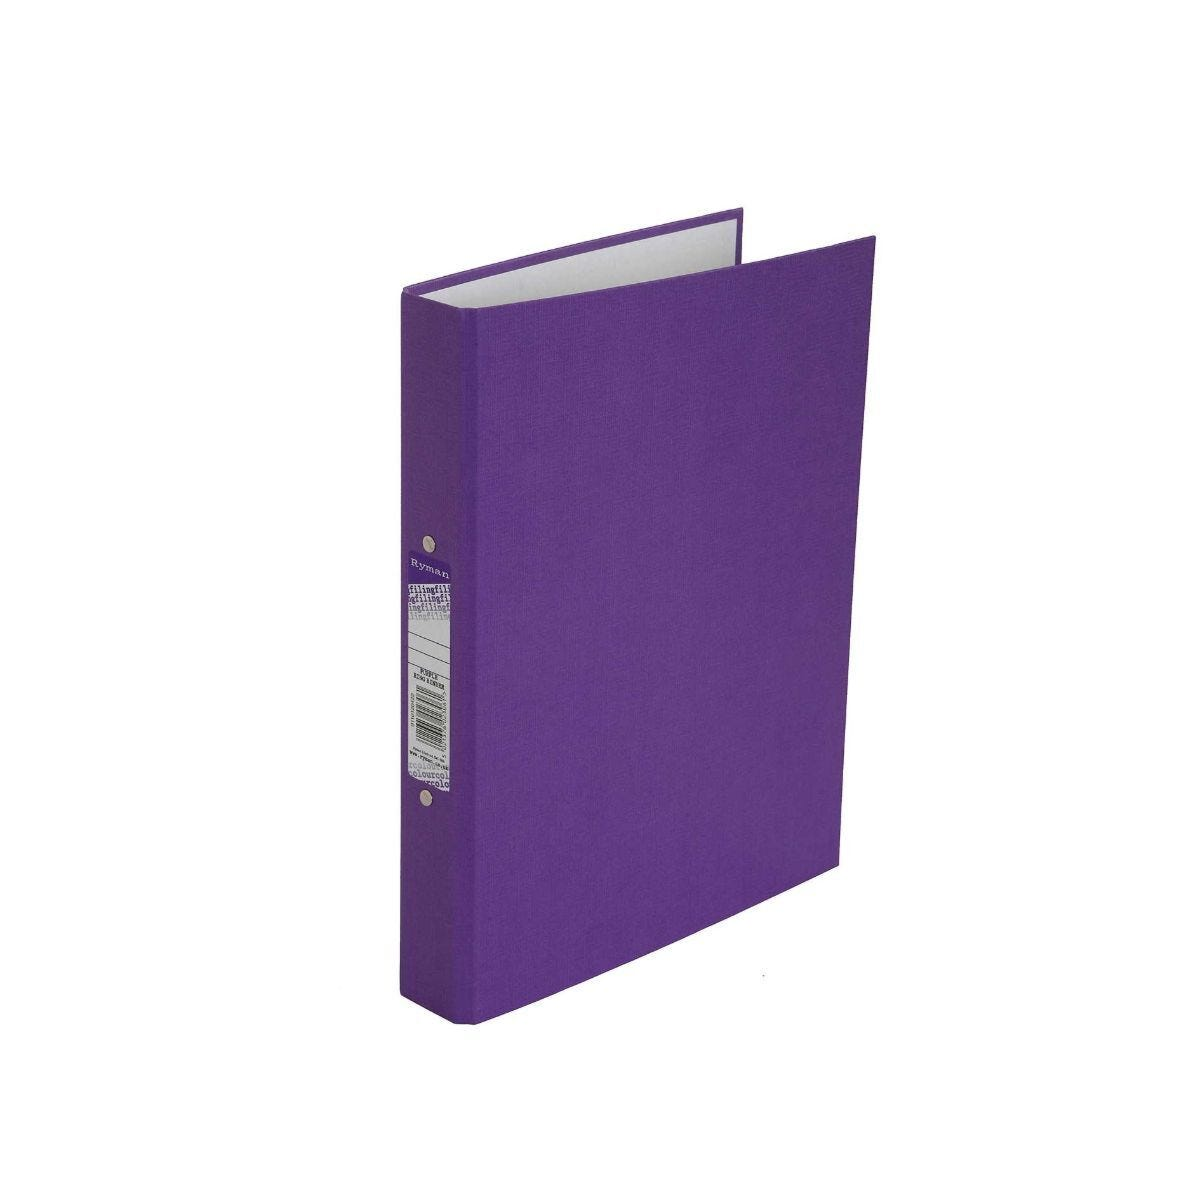 Ryman Colour Ringbinder A4 2-Ring Pack of 10 Purple